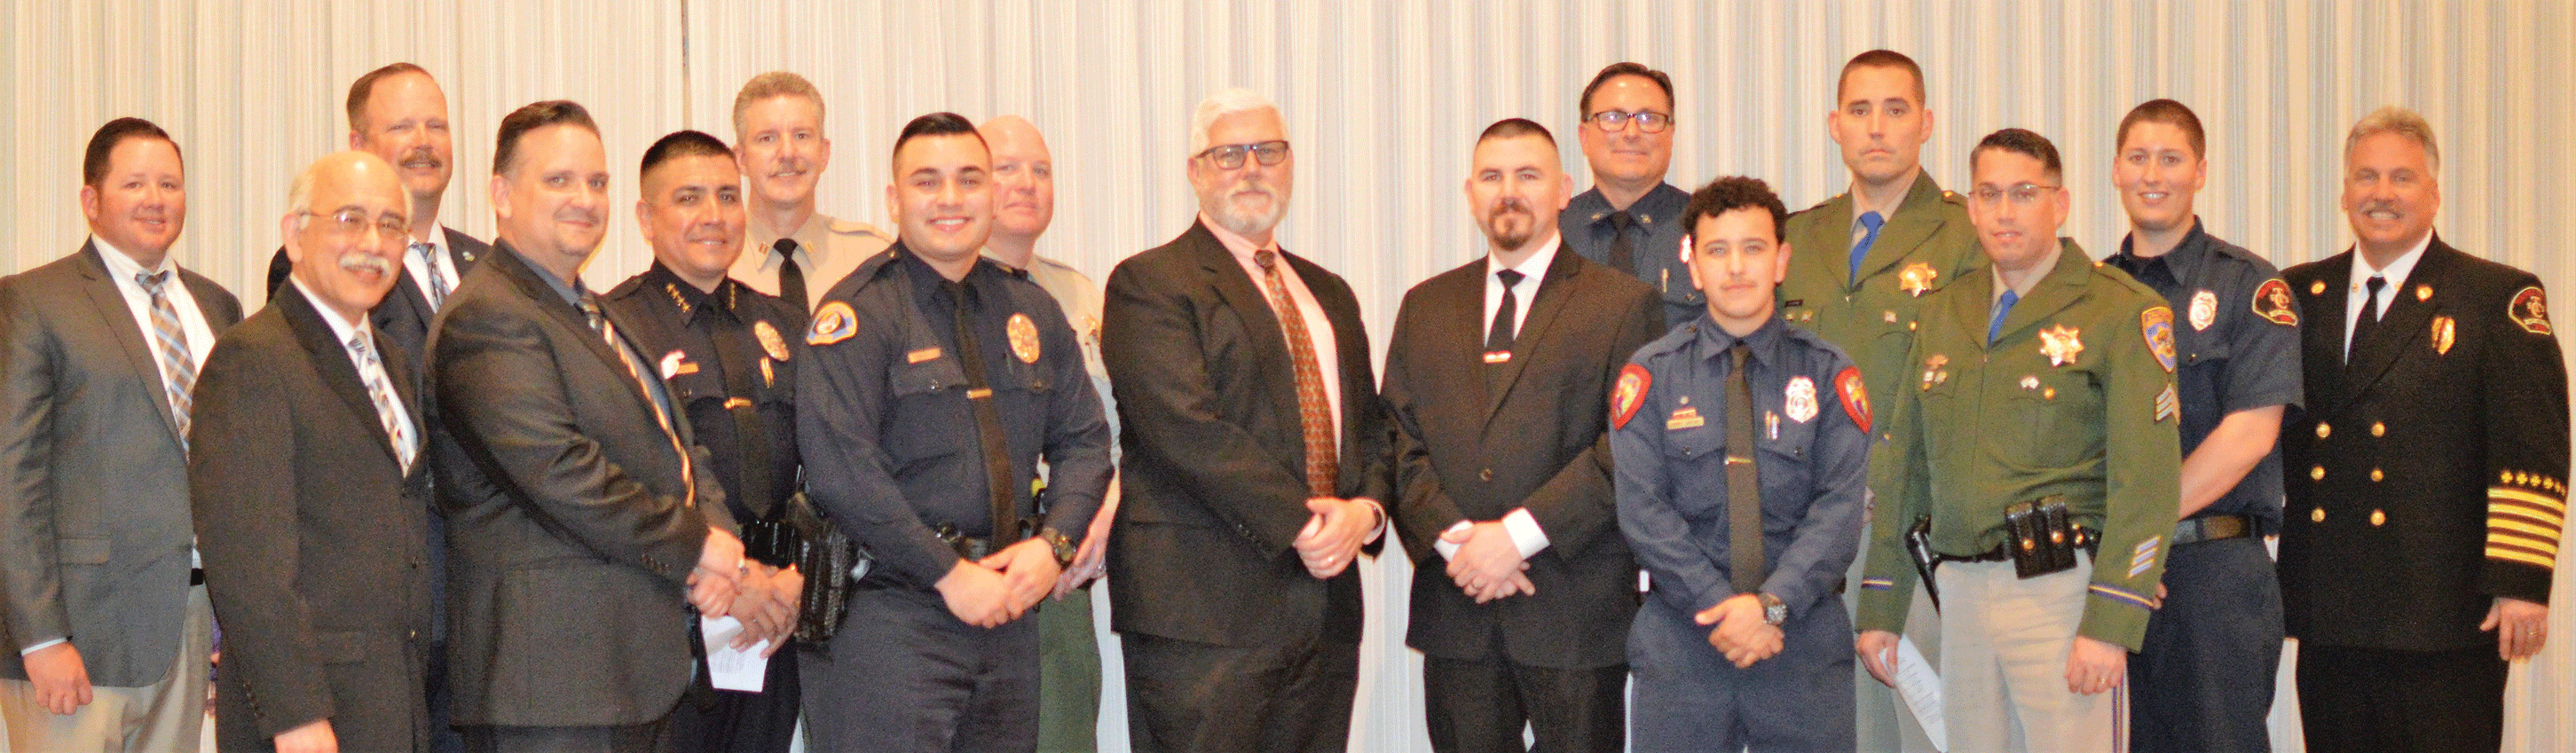 Public safety takes center stage at Knights of Columbus dinner